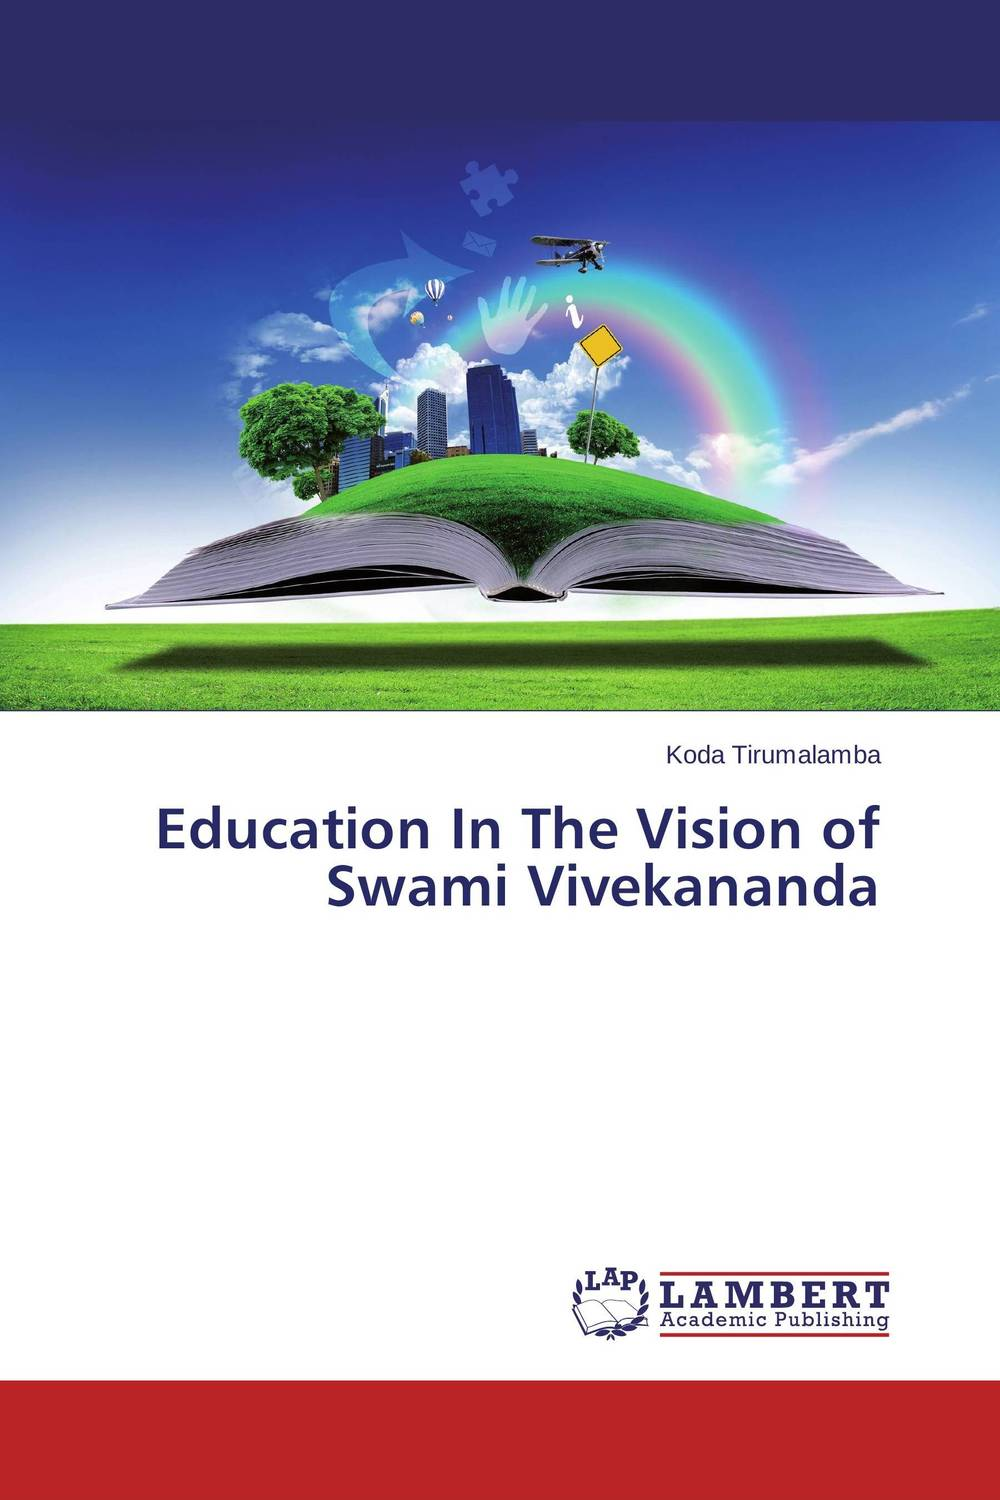 Education In The Vision of Swami Vivekananda pain management among colorectal cancer patient on chemotherapy